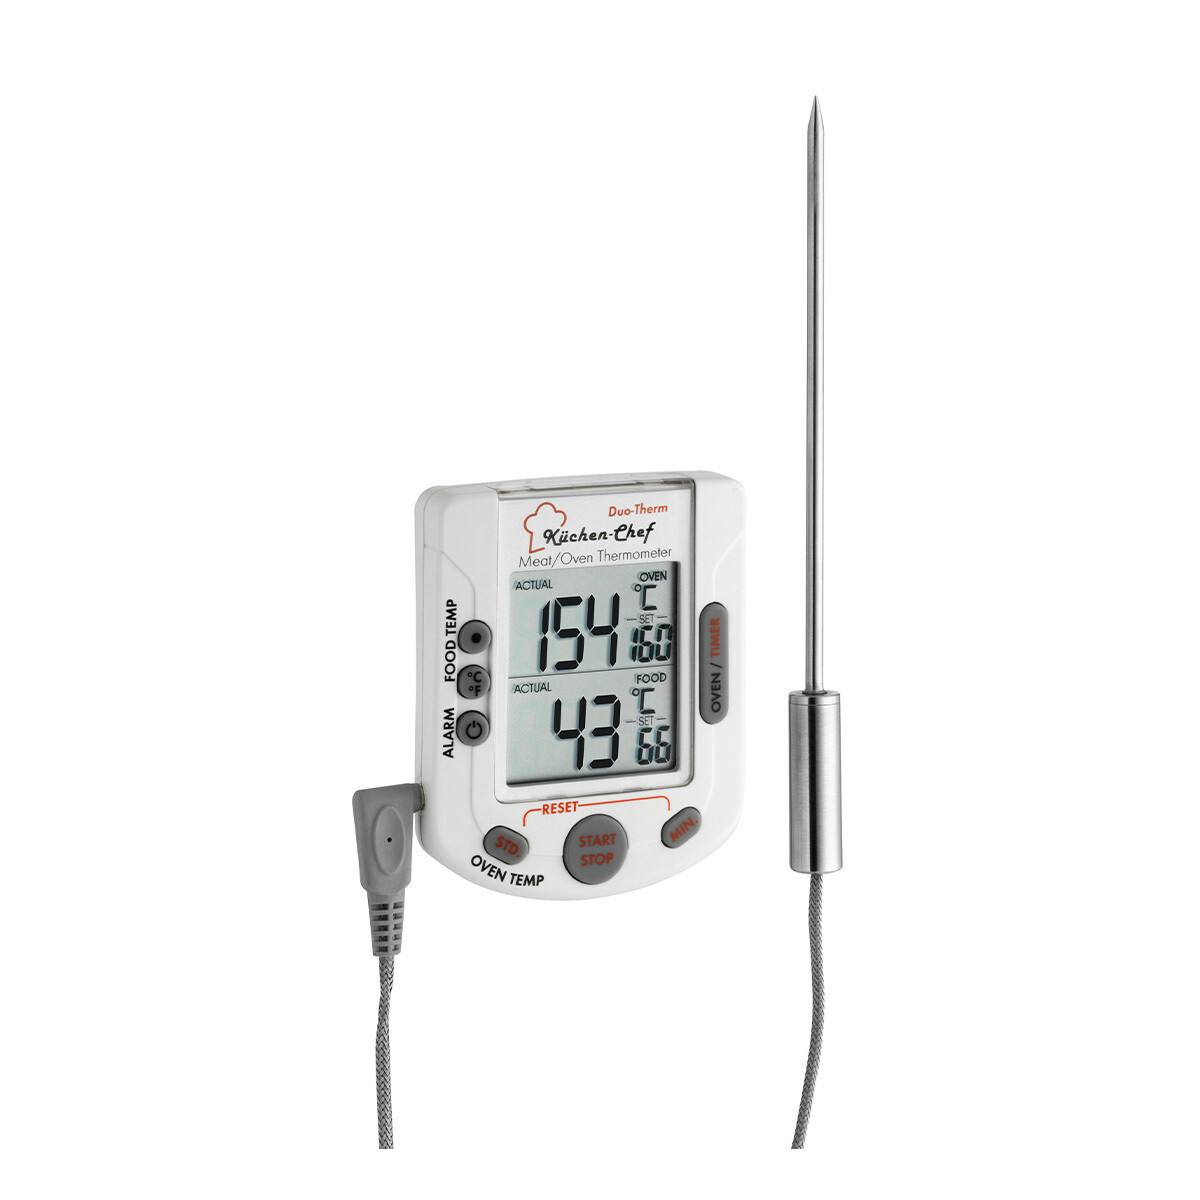 Digitales Grill-Braten-/Ofenthermometer KÜCHEN-CHEF DUO-THERM